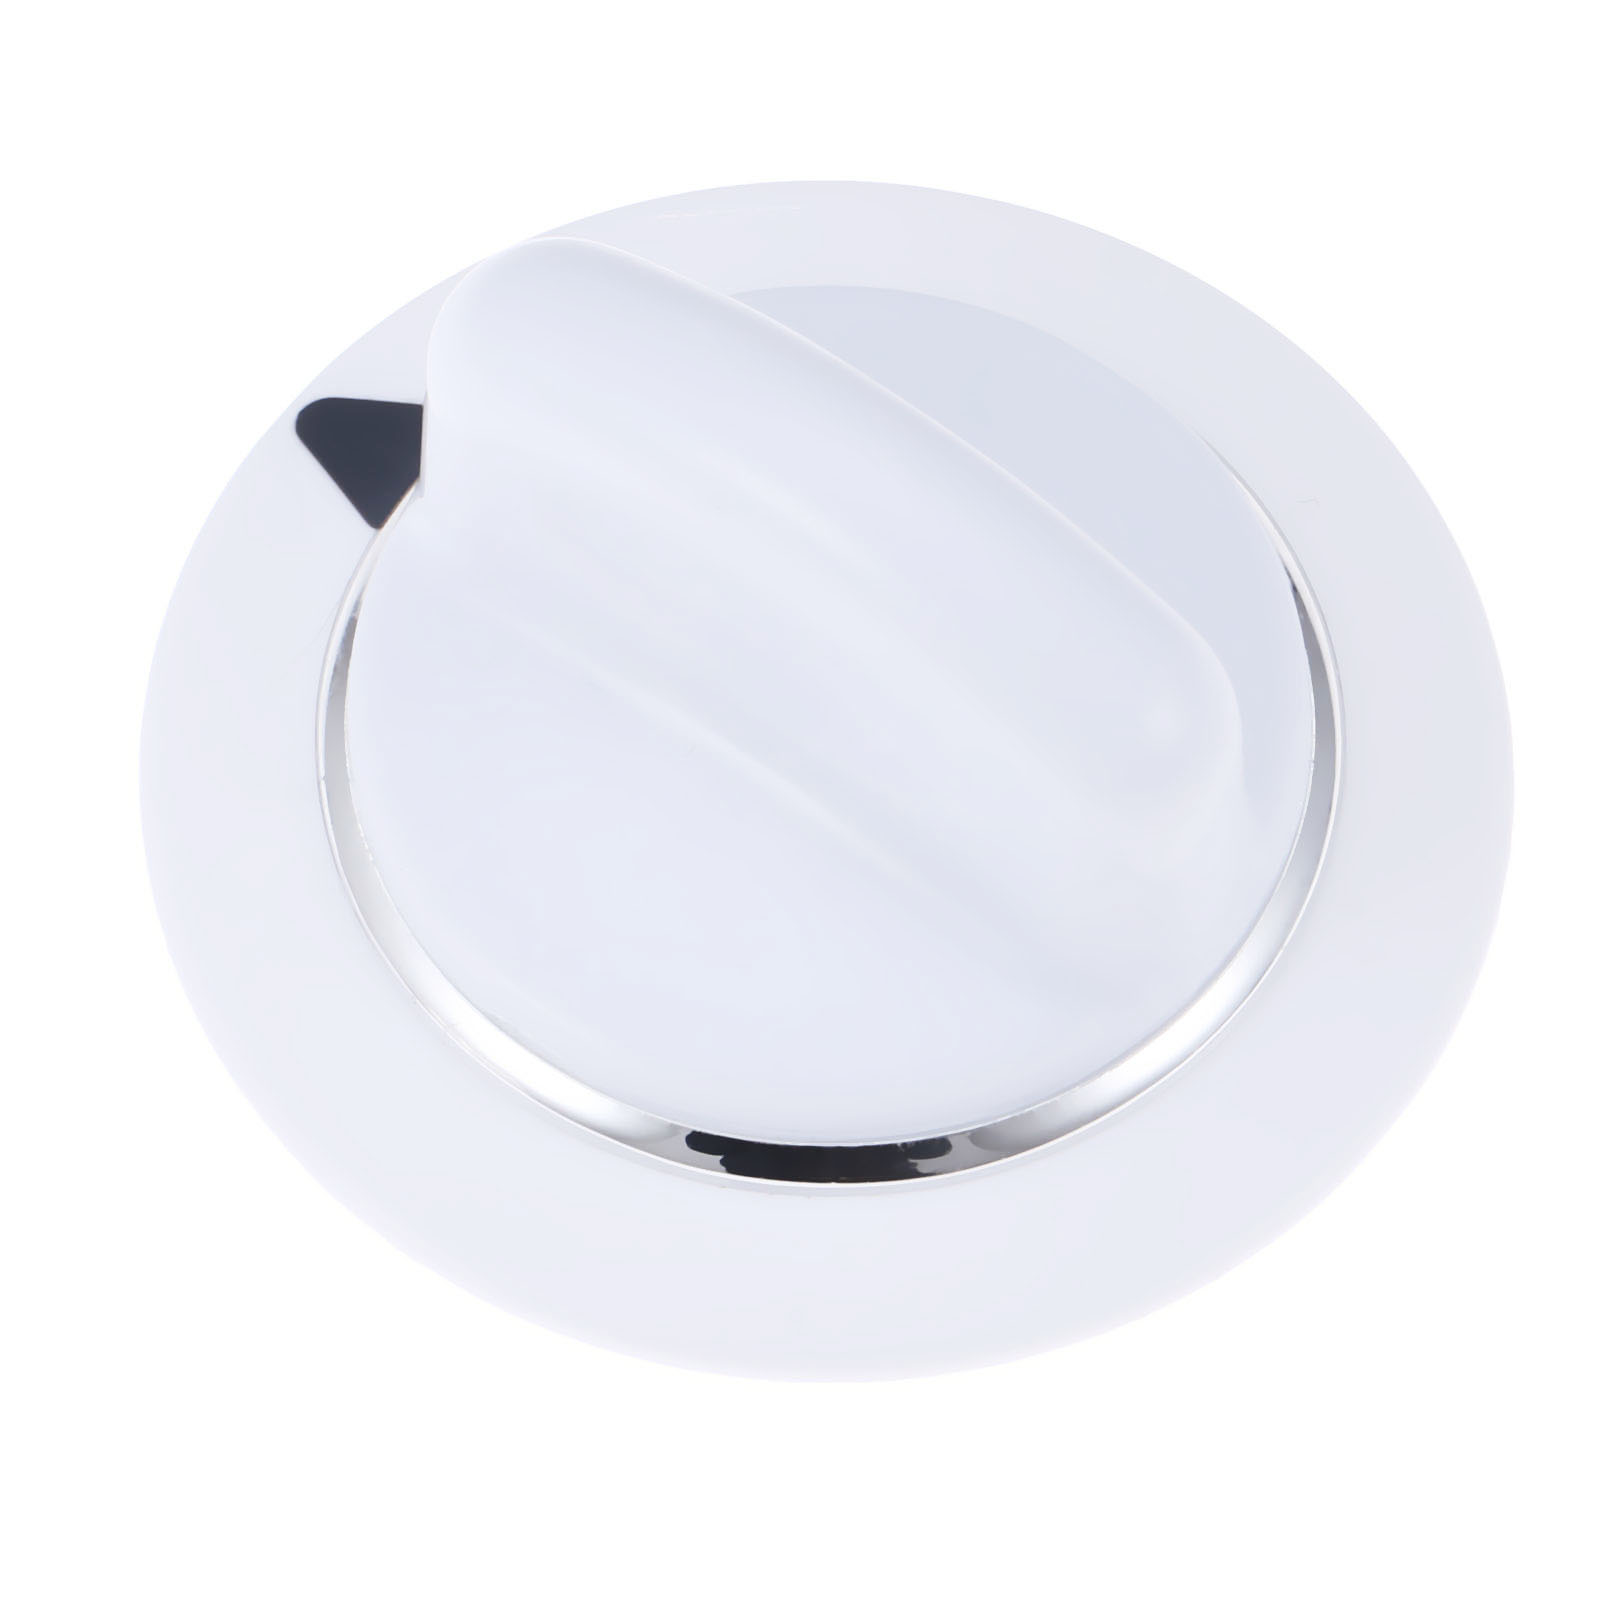 WE1M652 Timer Knob WE01X20378 Control Knob For General Electric Dryer (White)